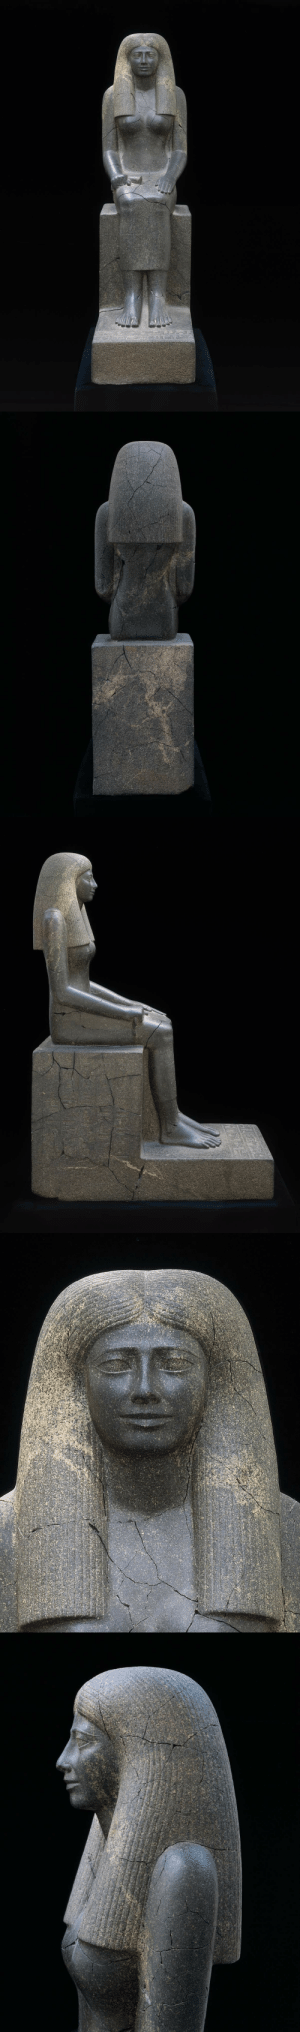 Period, Tumblr, and Blog: theancientwayoflife: ~ Statue of Lady Sennuwy. Culture: Egyptian Period: Middle Kingdom, 12th Dynasty, reign of Senwosret I Date: 1971–1926 B.C. Place of origin: Kerma, Nubia (Sudan)